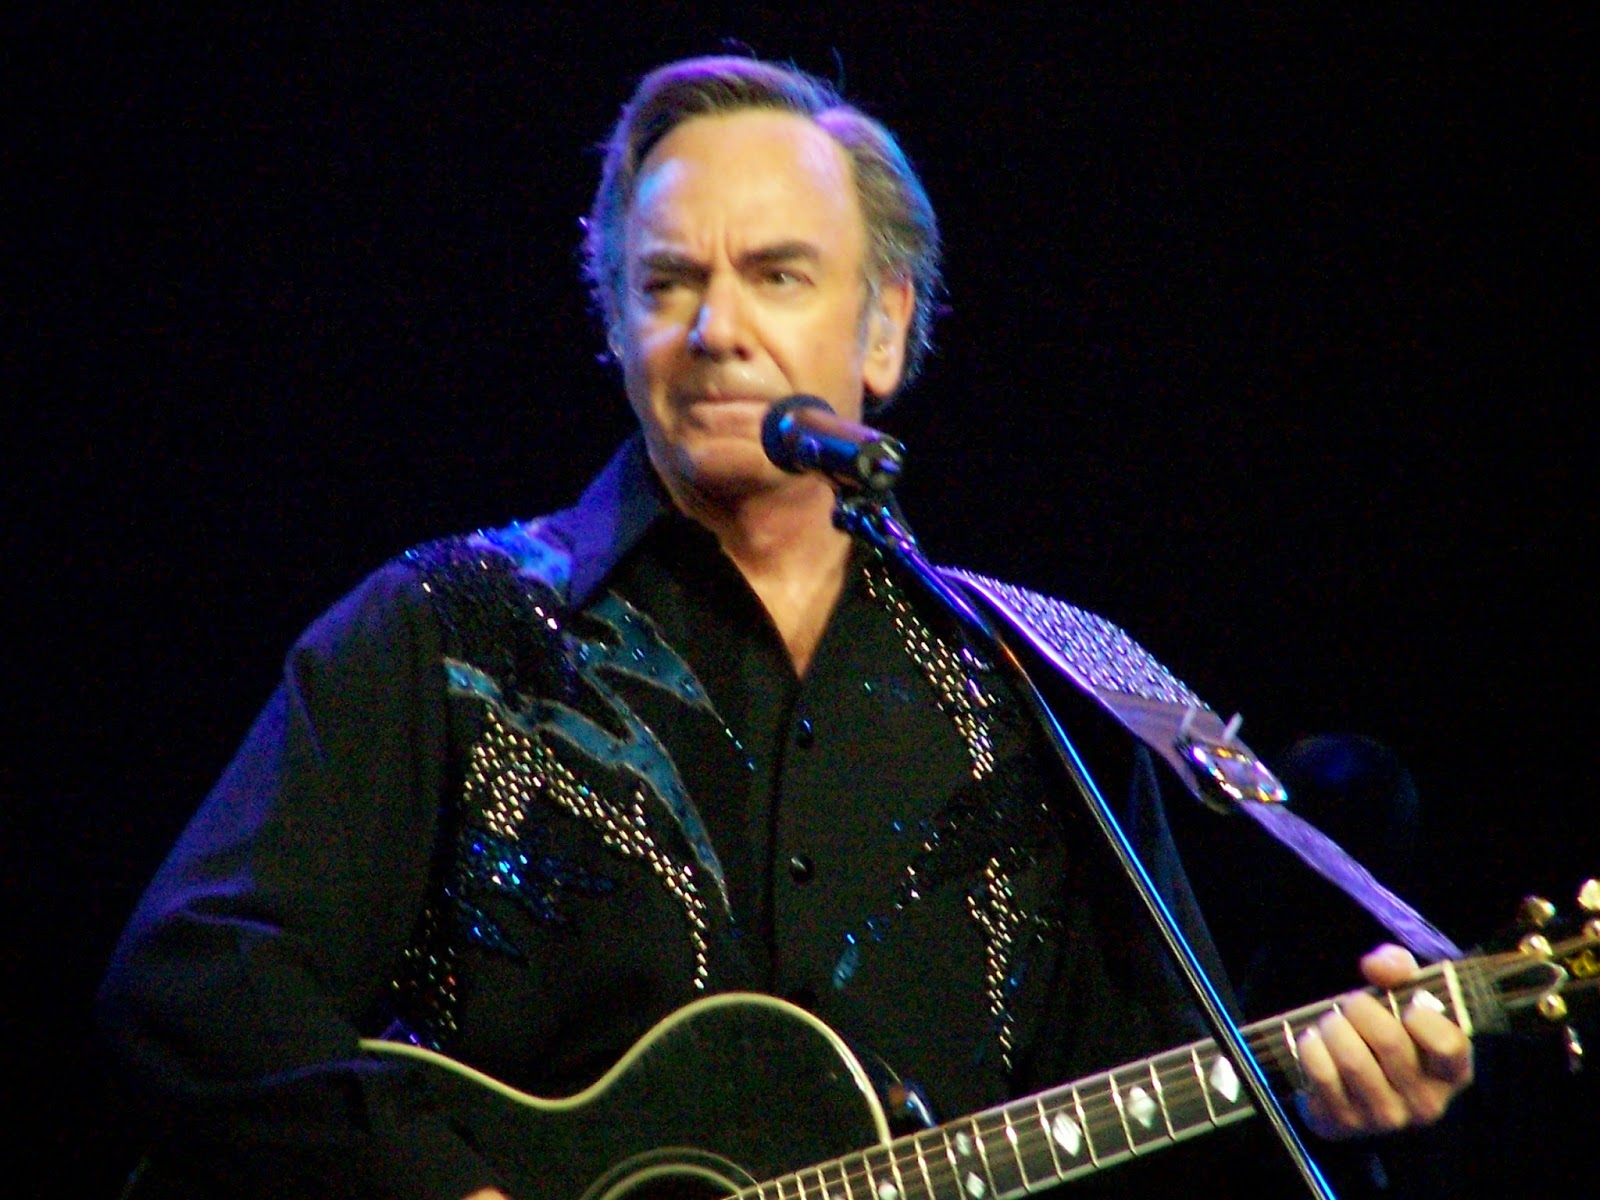 http://en.wikipedia.org/wiki/Neil_Diamond